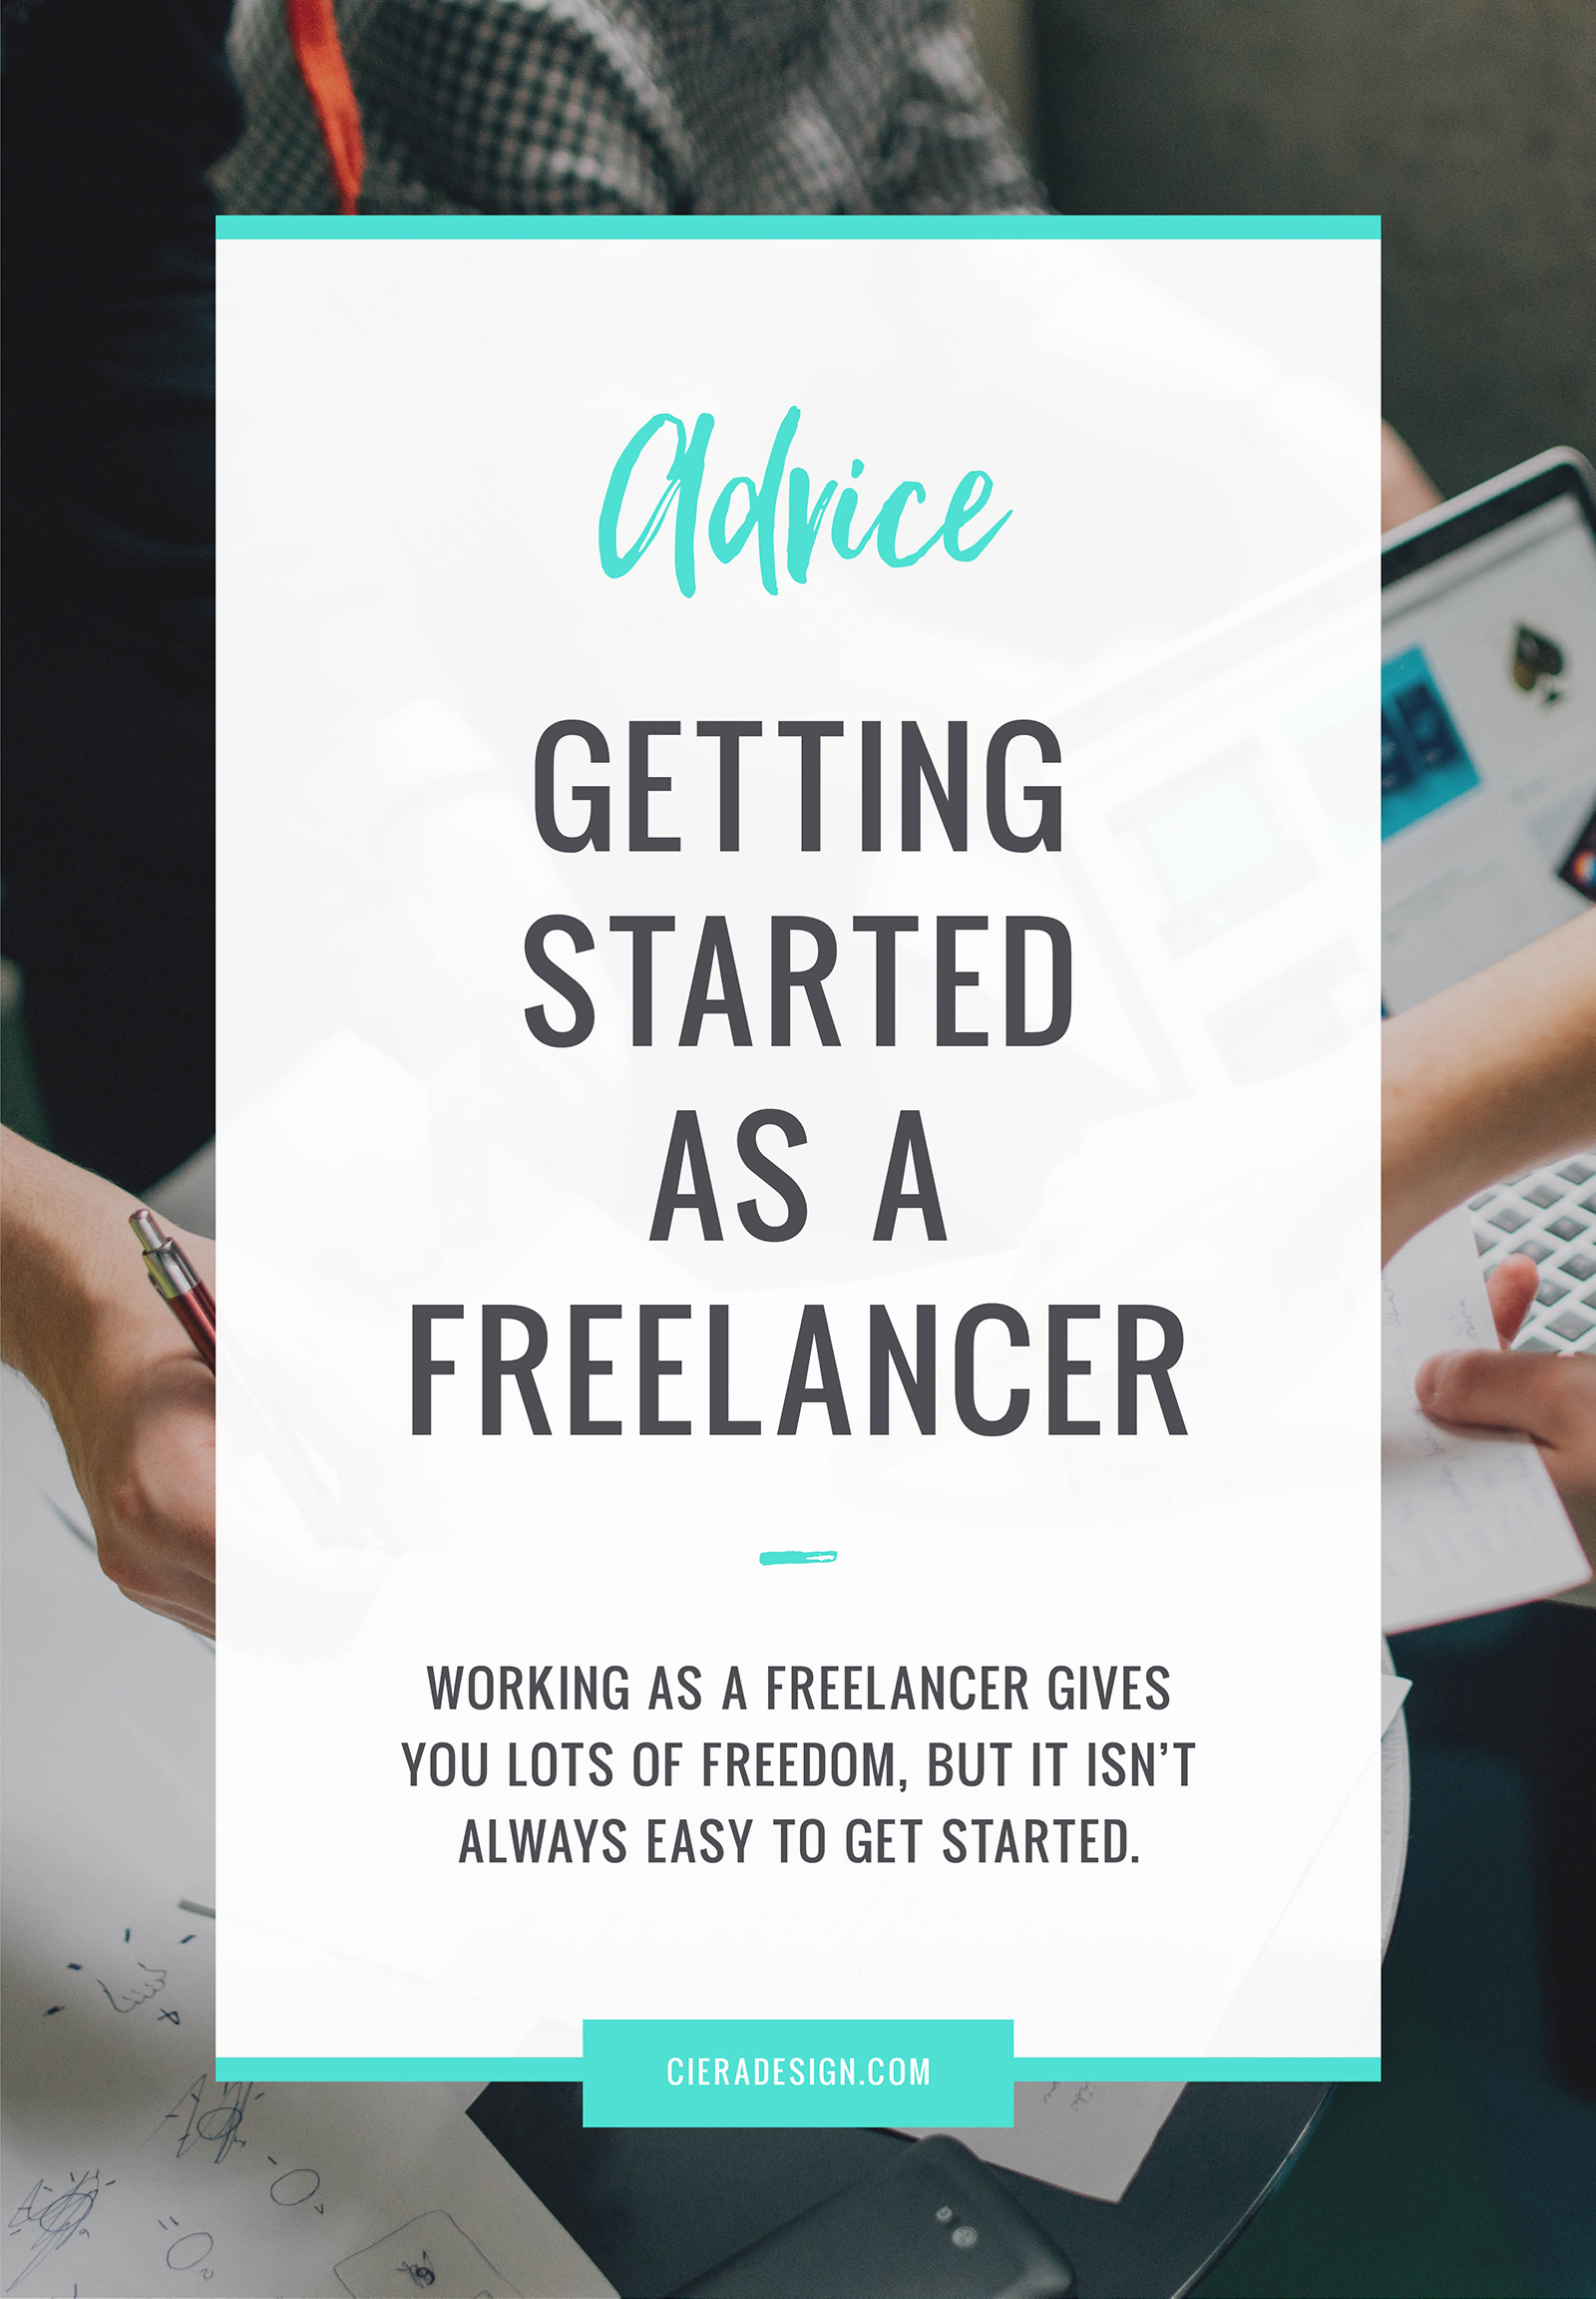 Working as a freelancer gives you lots of freedom, but it isn't always easy to get started.